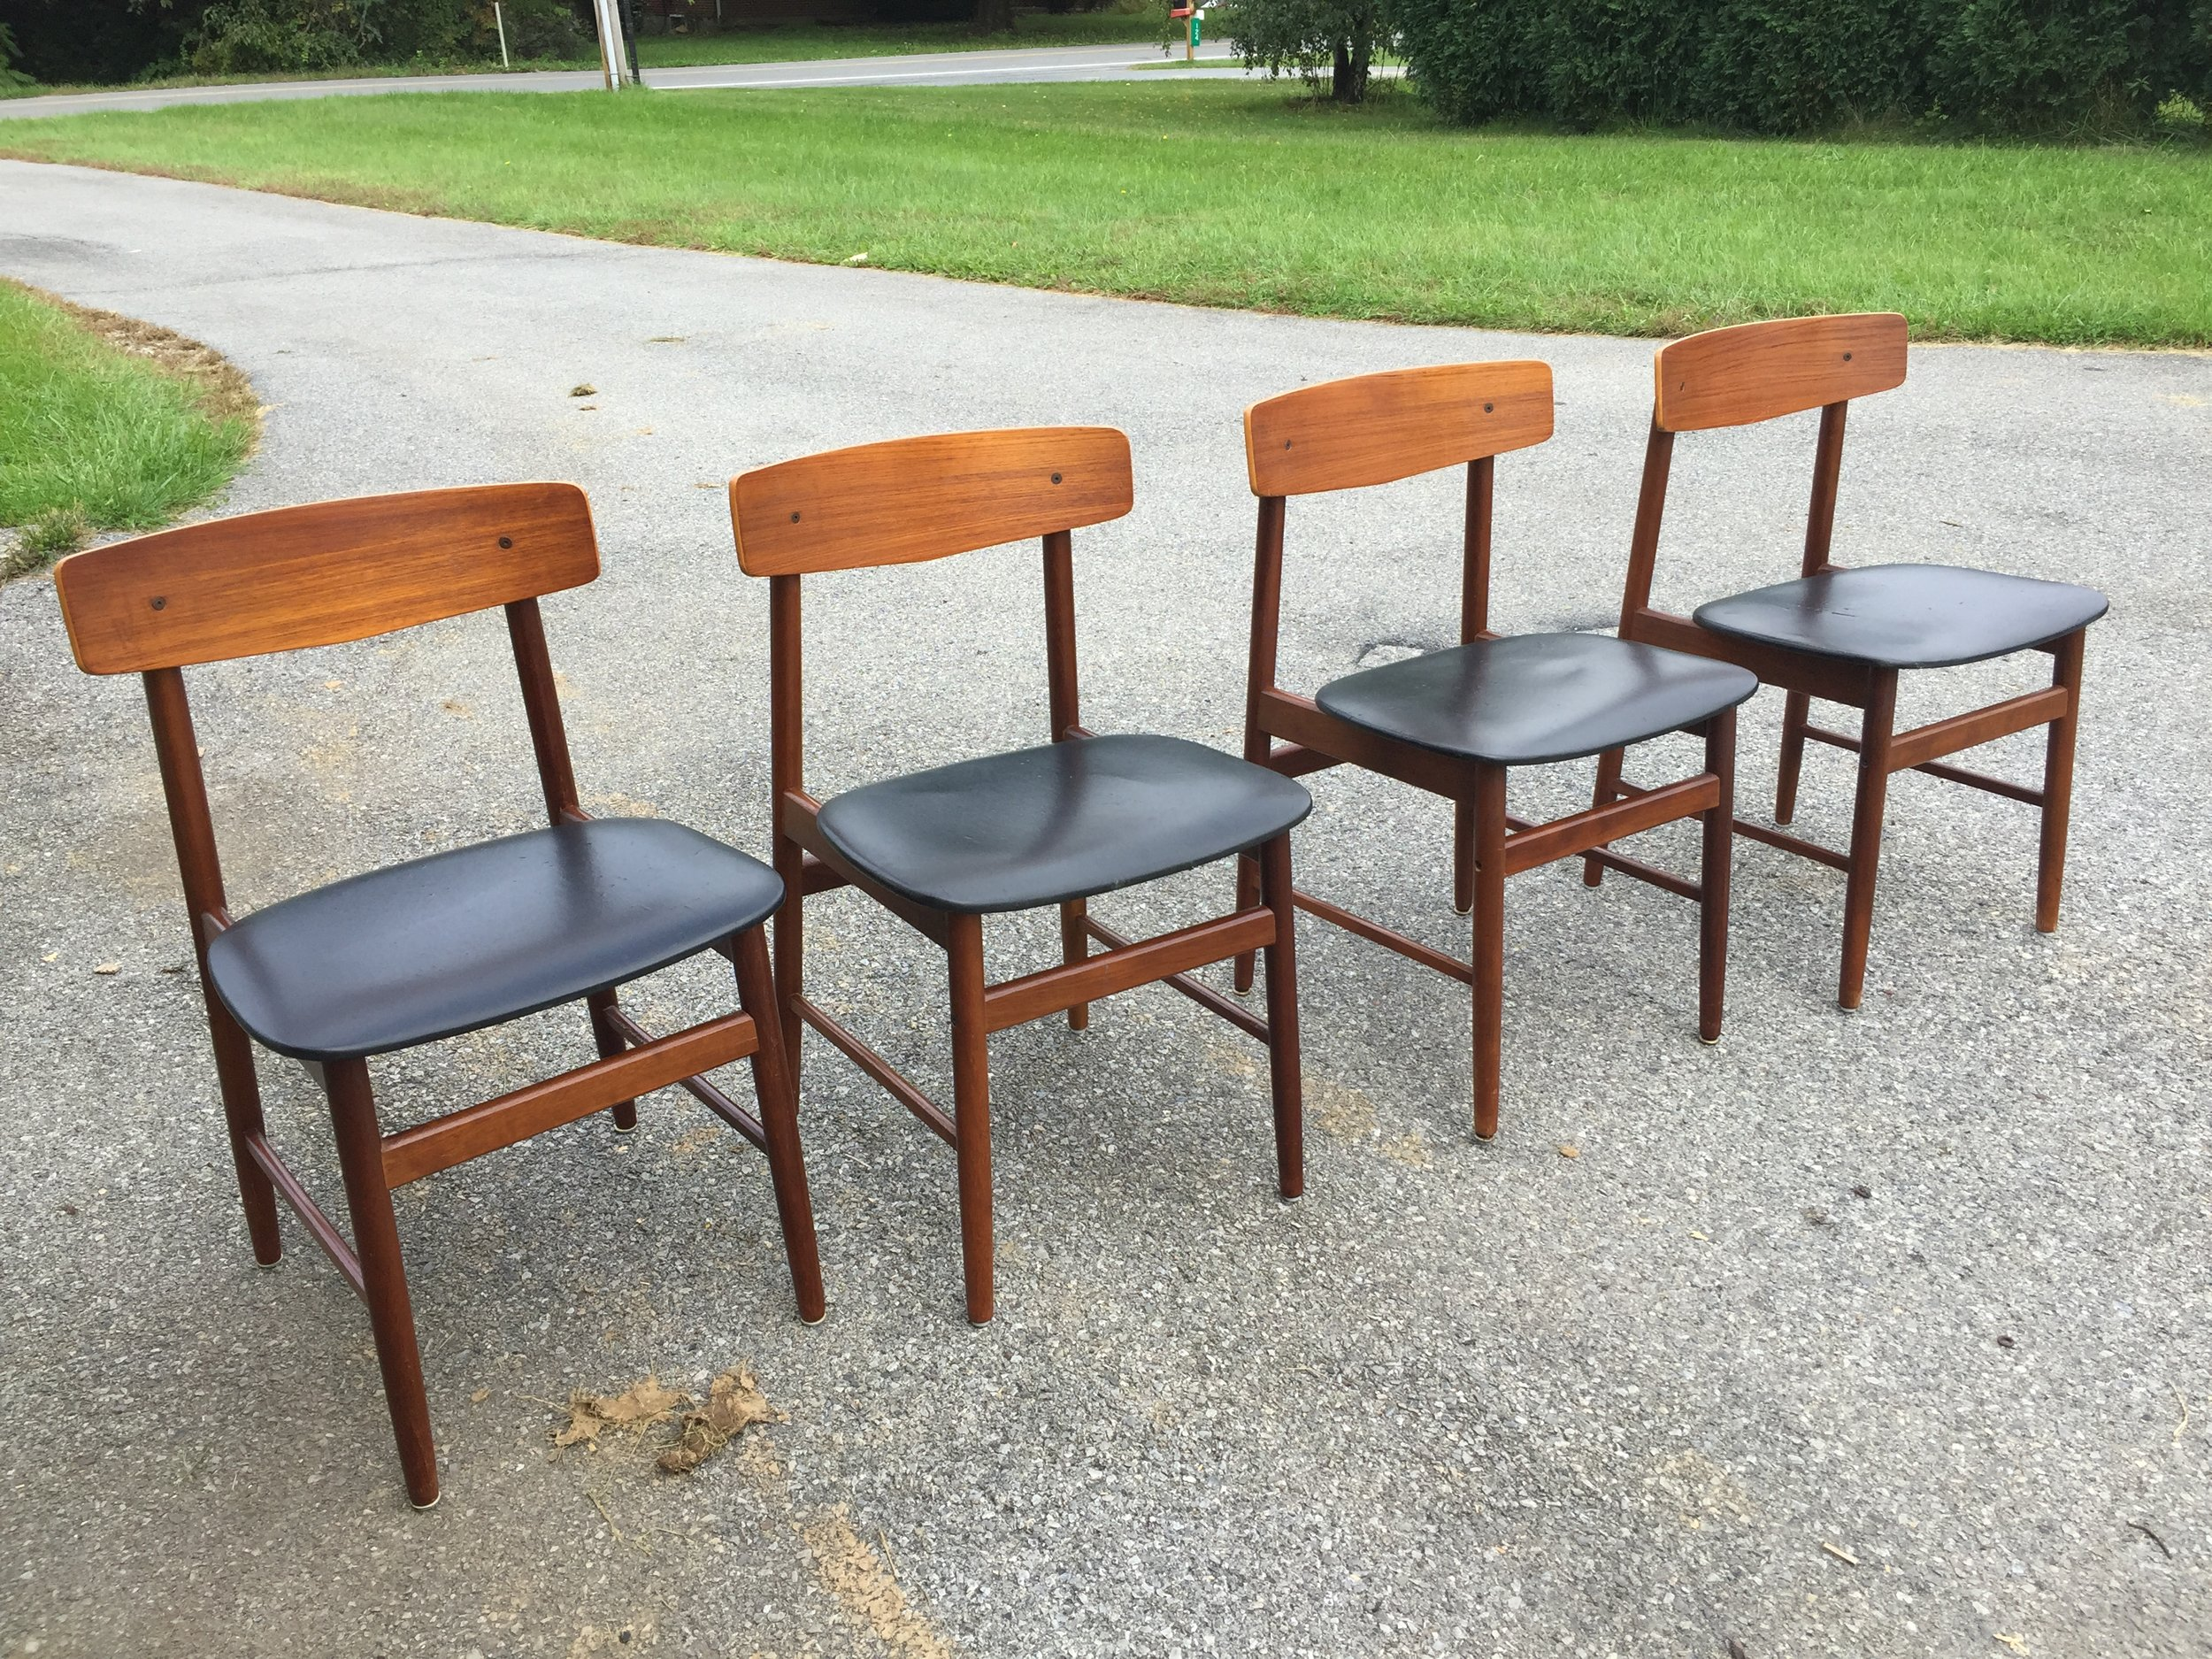 Set of 4 Farstrup Mobler dining chairs.  I will custom recover the seats in fabric you choose from my stash, black vinyl or I can source something for you to order. They are listed in the Etsy shop, coming to chairish.